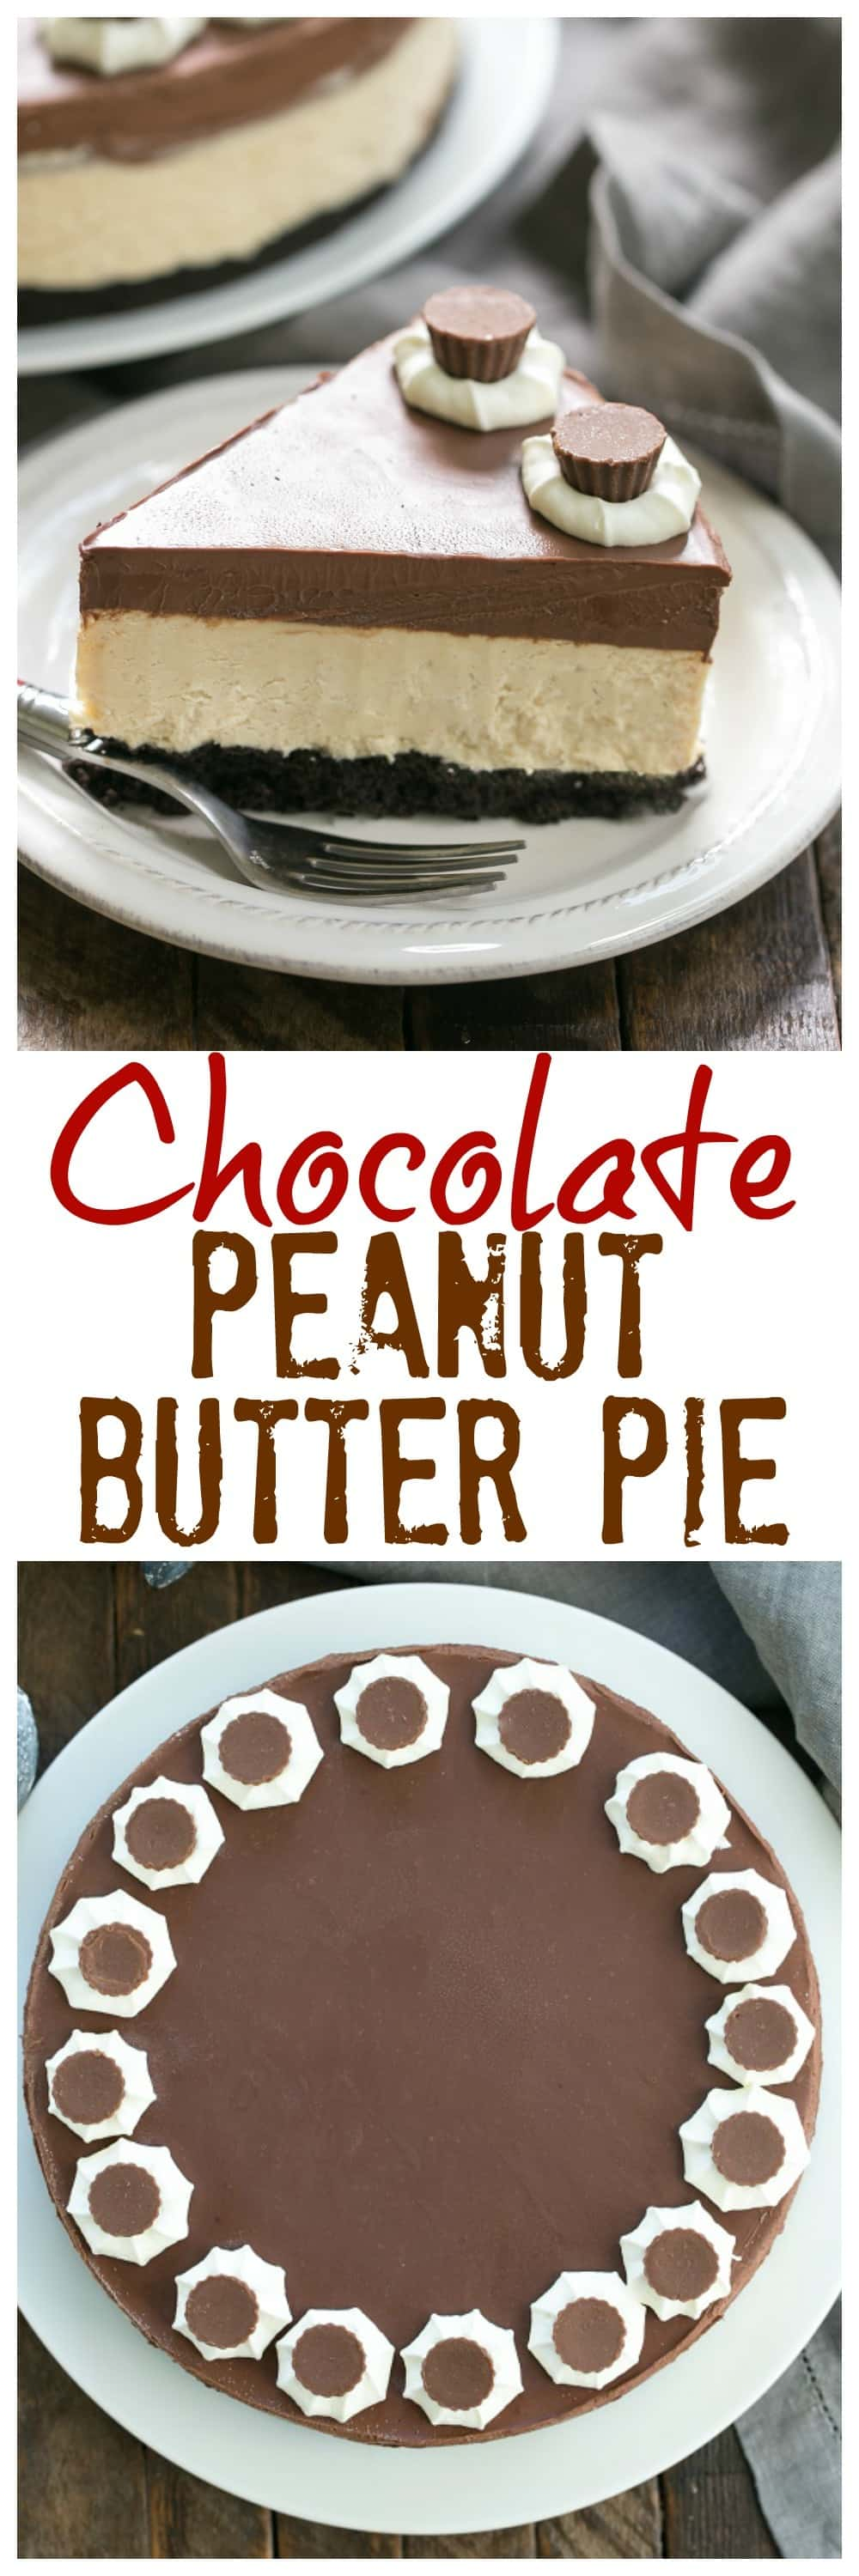 Chocolate Peanut Butter Pie - Chocolate cookie crust, peanut butter mousse and a thick layer of ganache make this one out of this world dessert! #chocolatepeanutbutterdessert #pie #peanutbutterpie #layeredpie